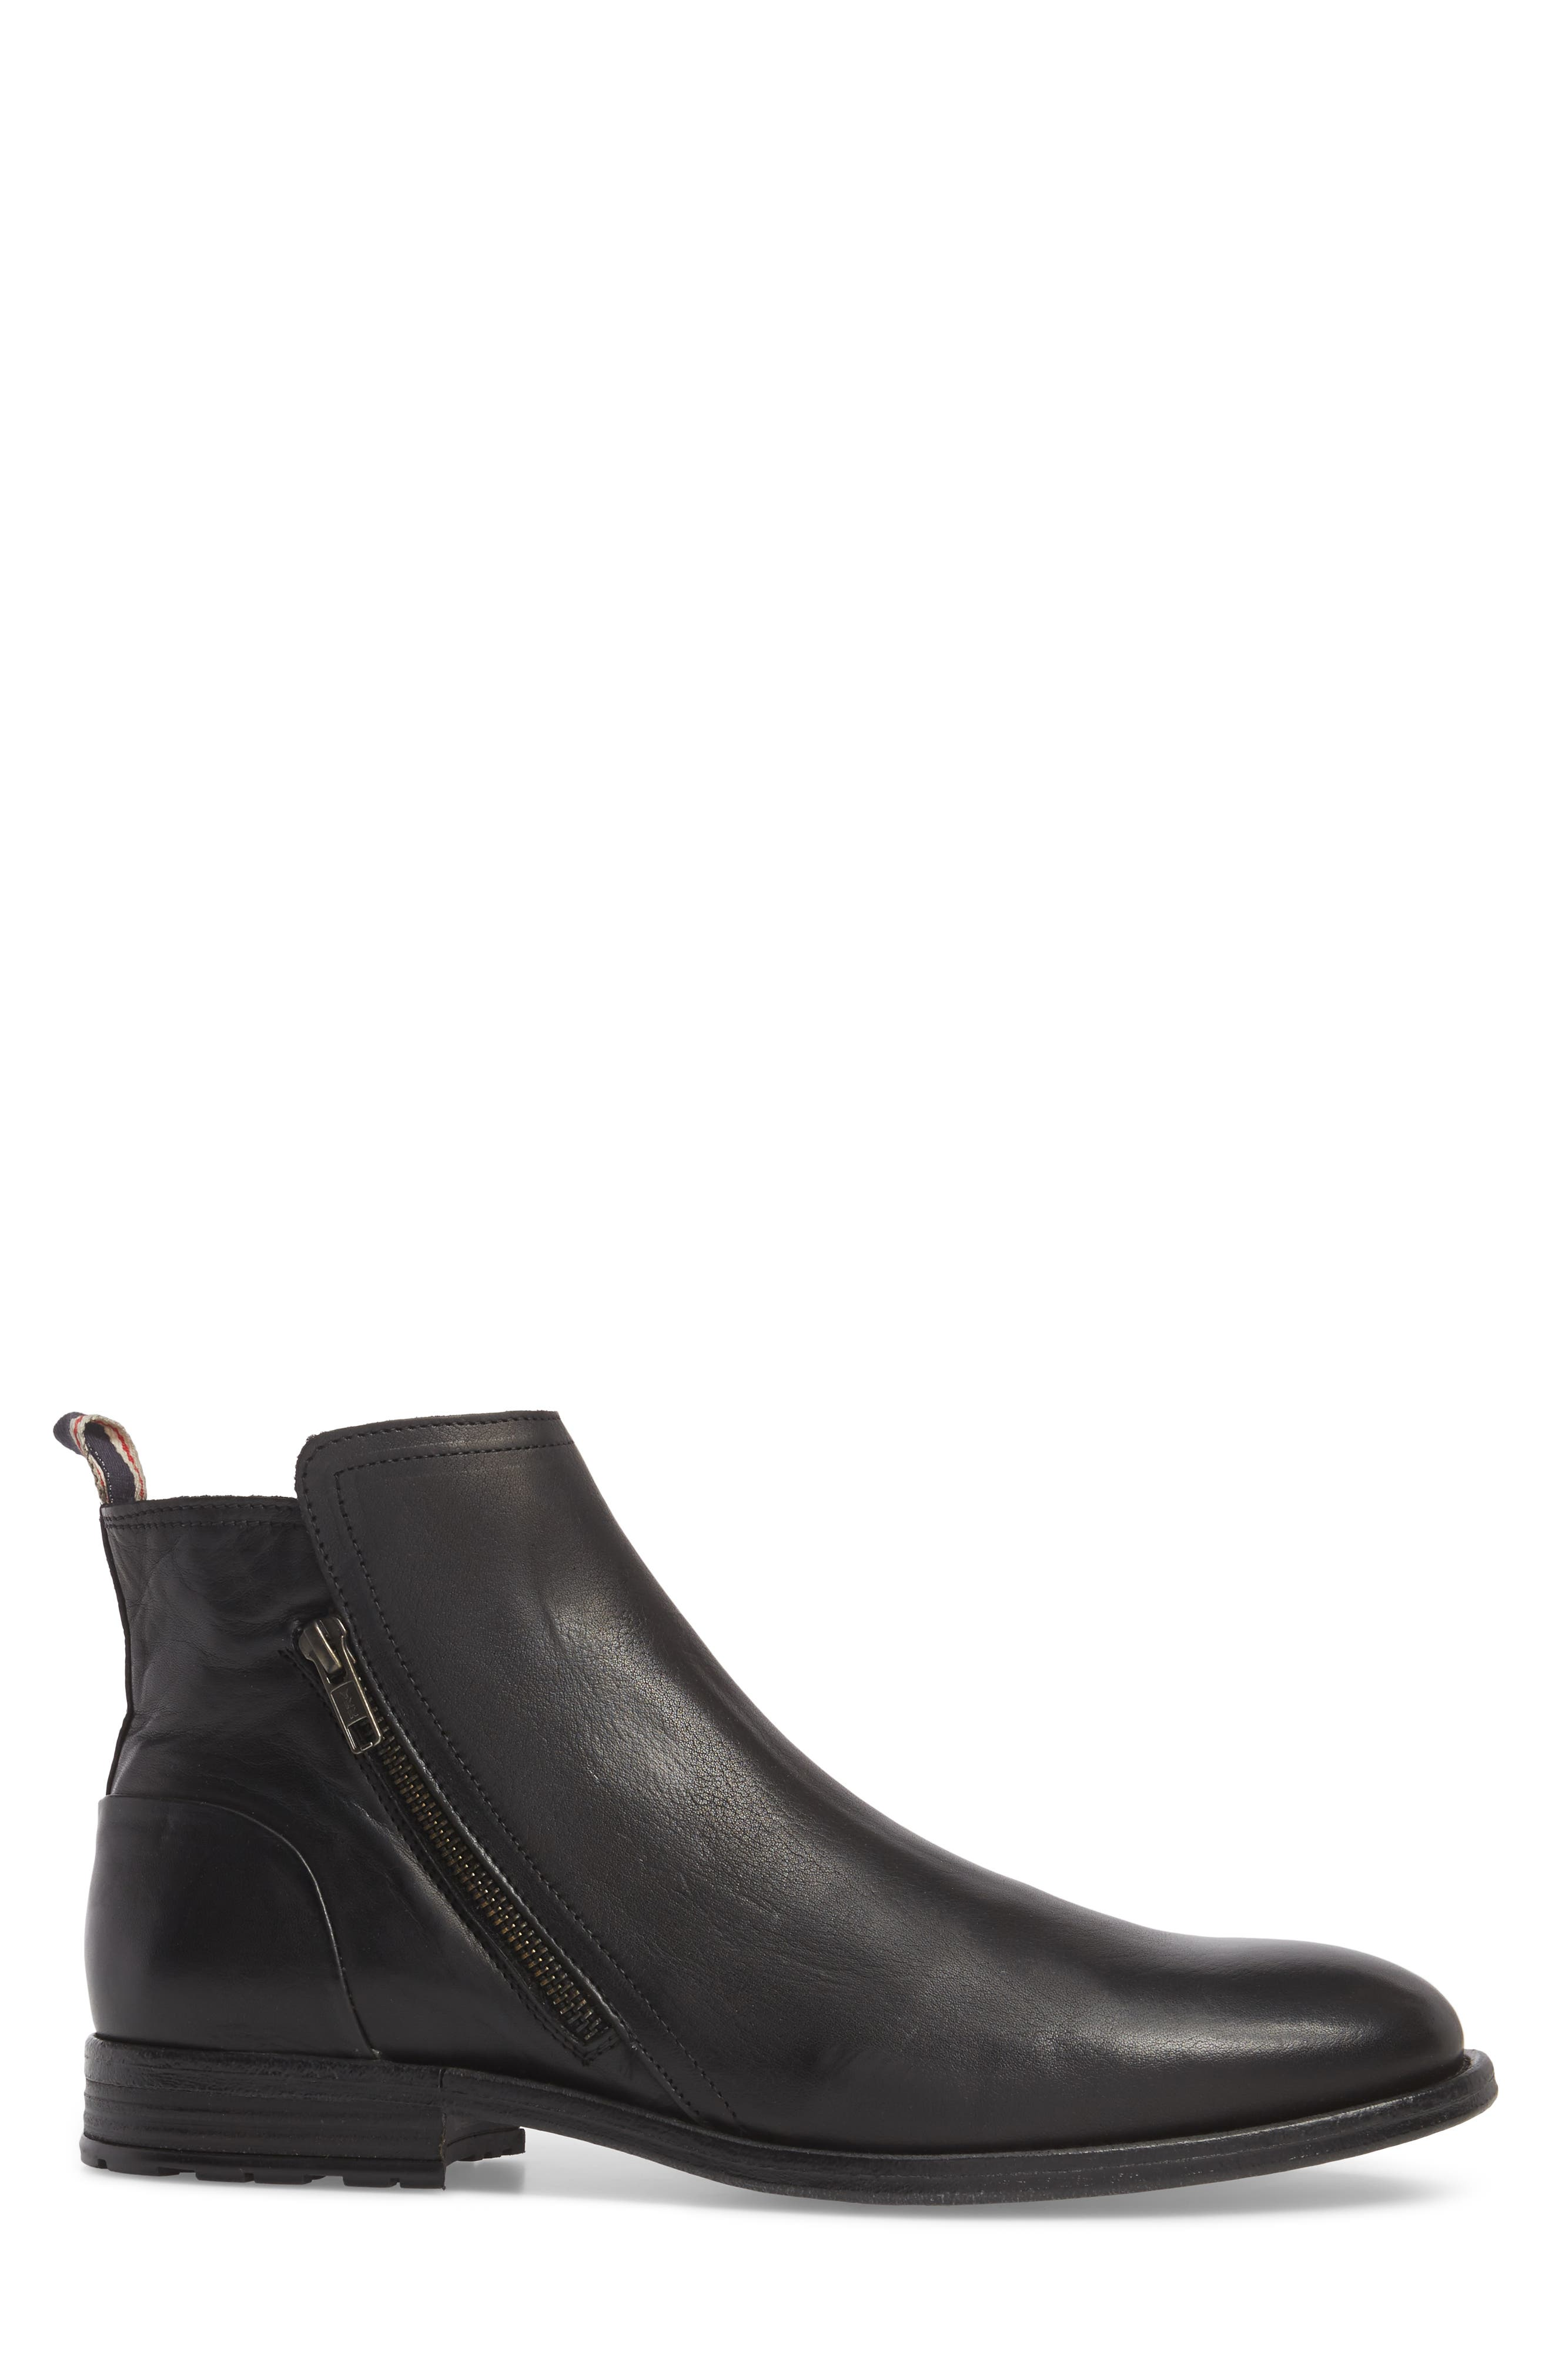 Gerone Zip Boot,                             Alternate thumbnail 3, color,                             Black Leather Fabric